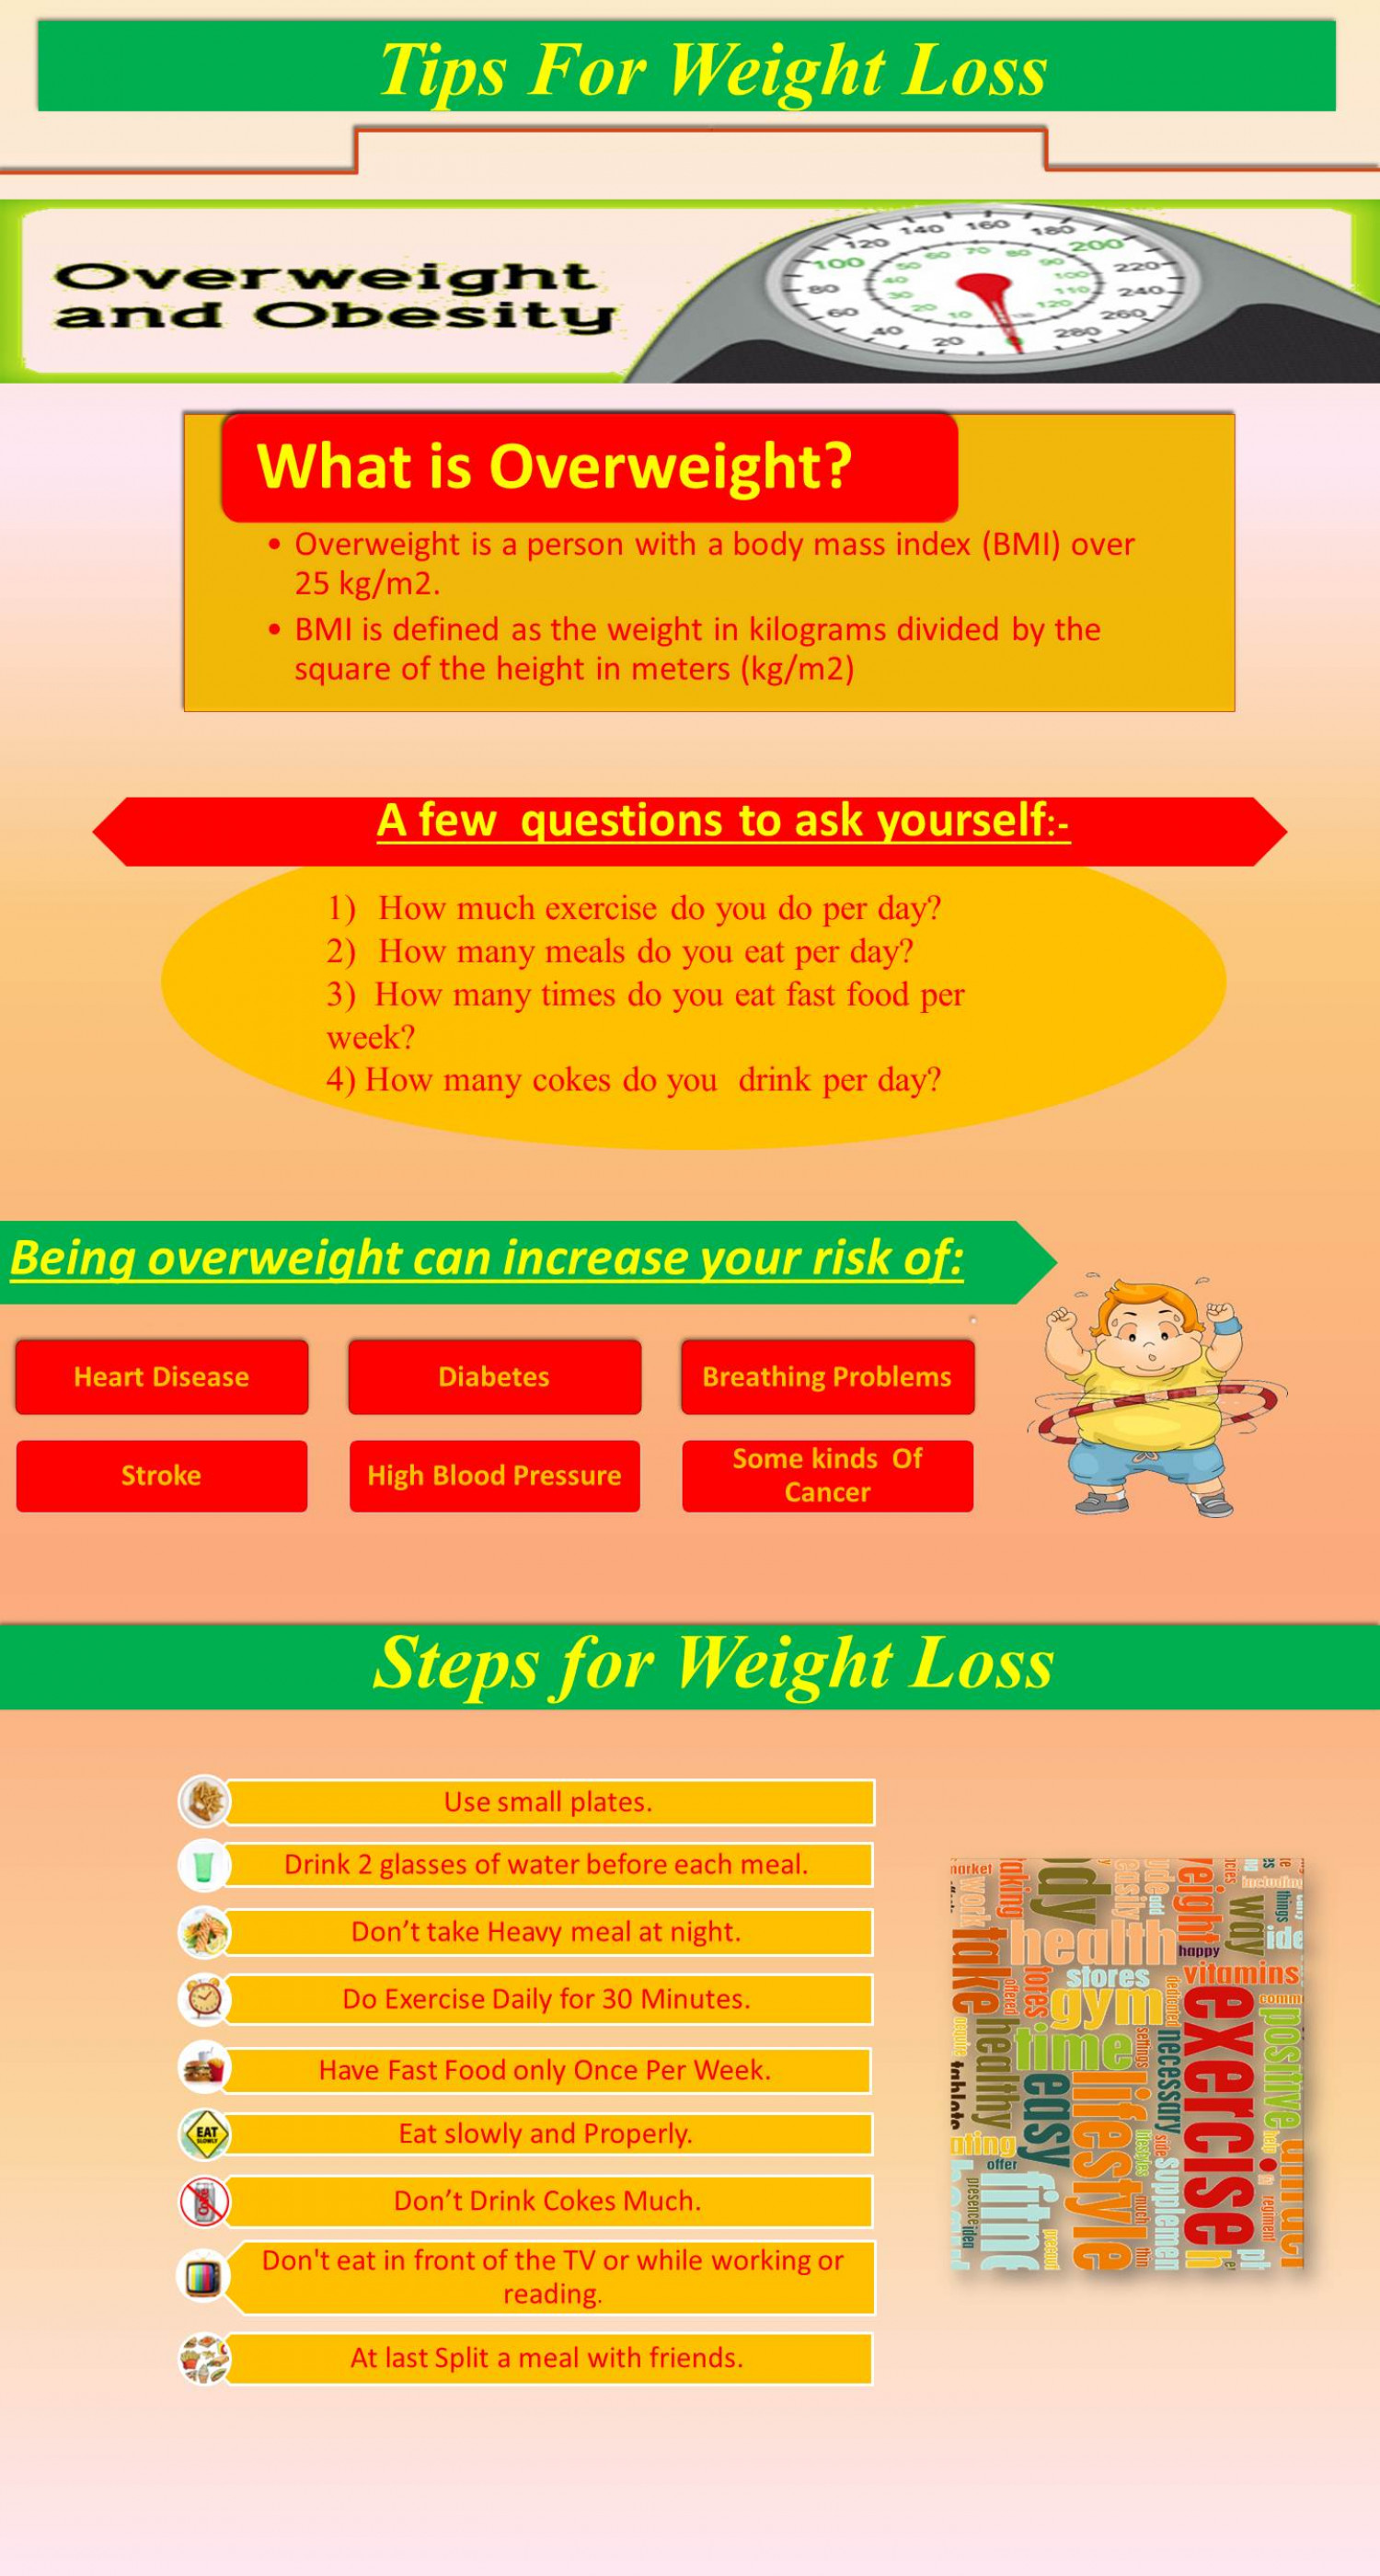 Tips for Weight Loss Infographic